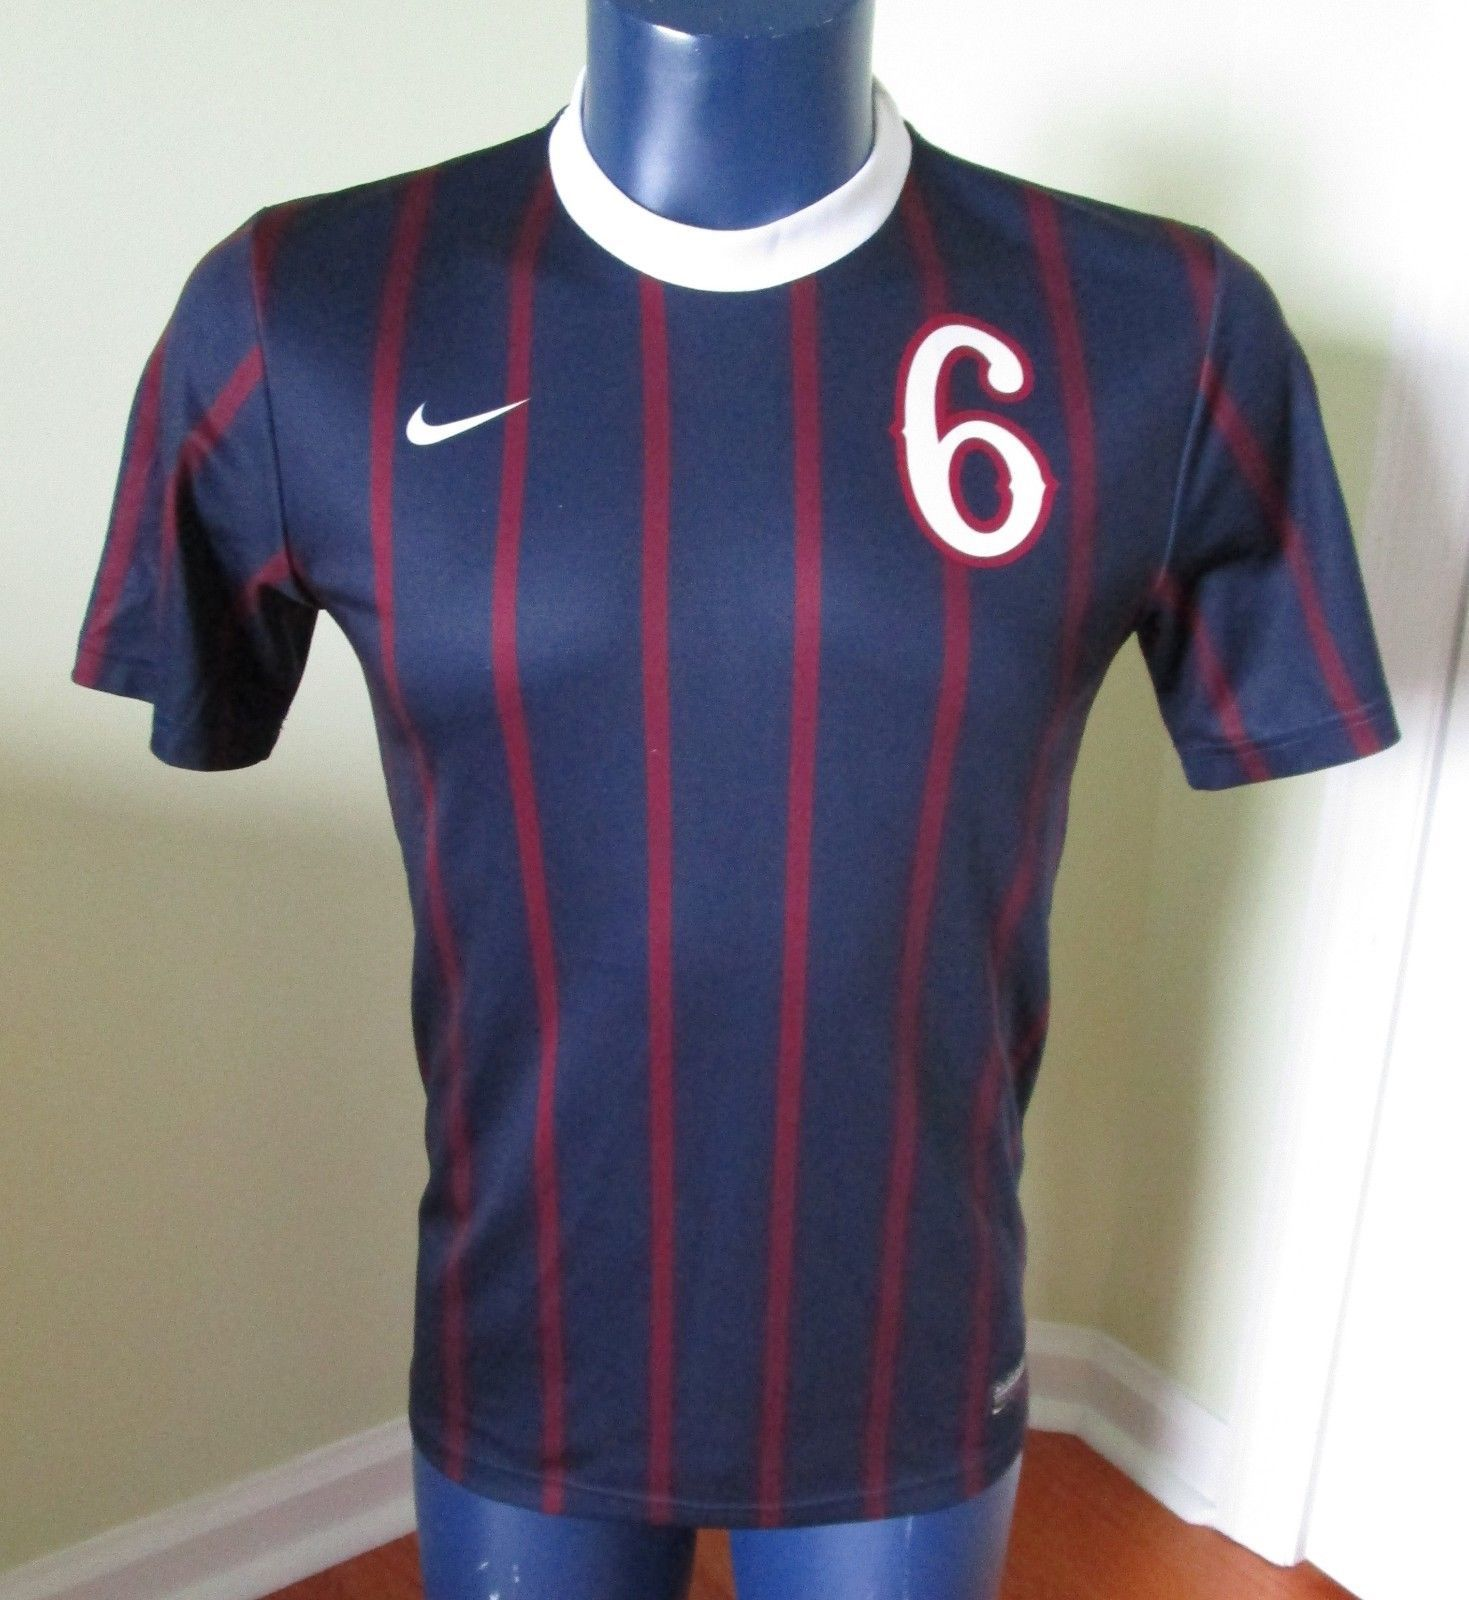 645d98ab0 Authentic NIke Soccer Jersey Phoenix 6 SIZE and 50 similar items